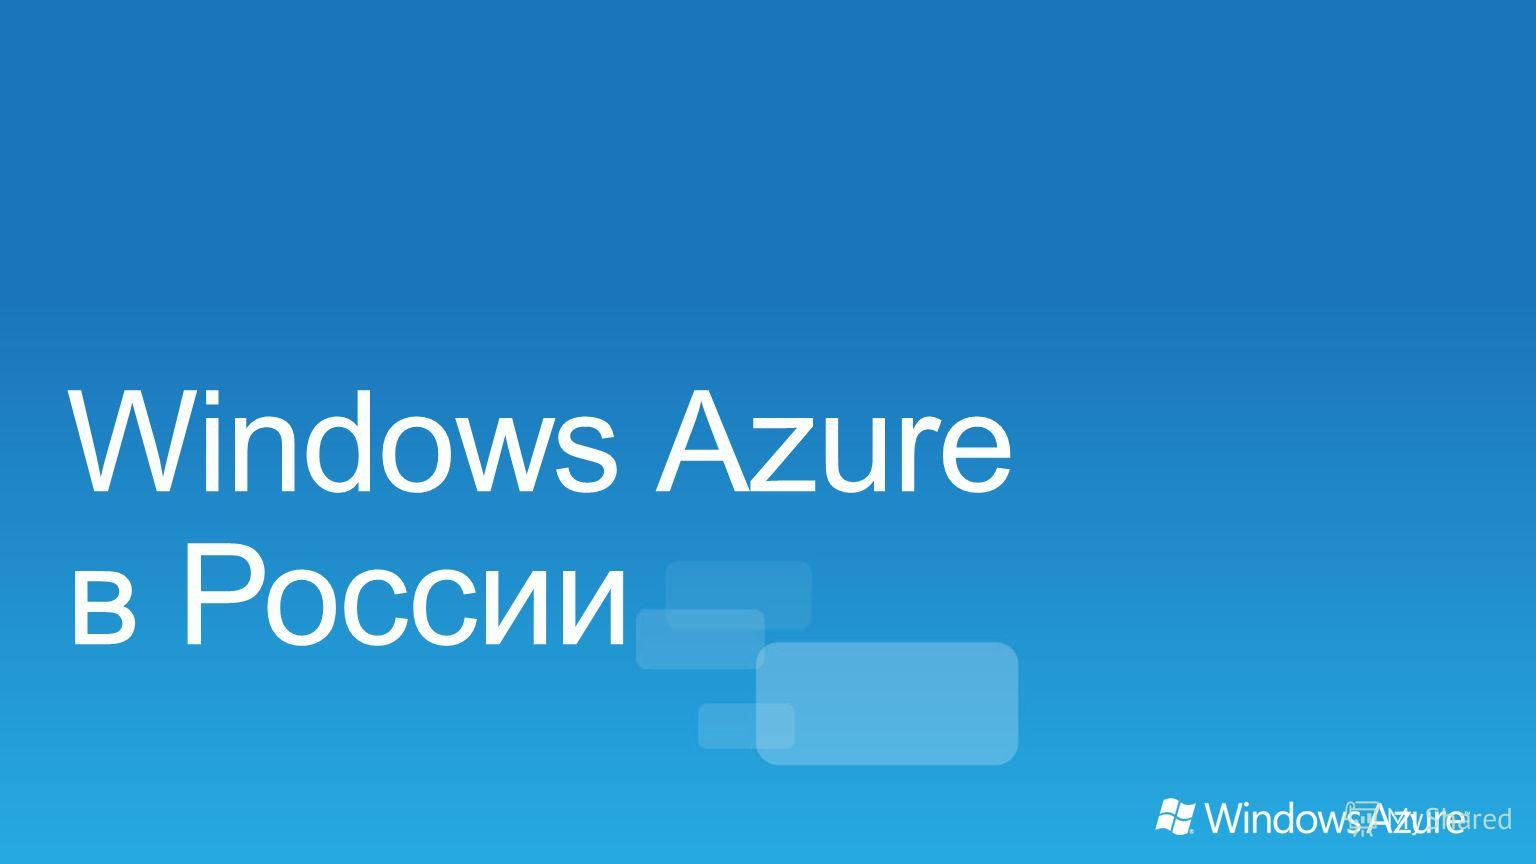 Windows Azure в России